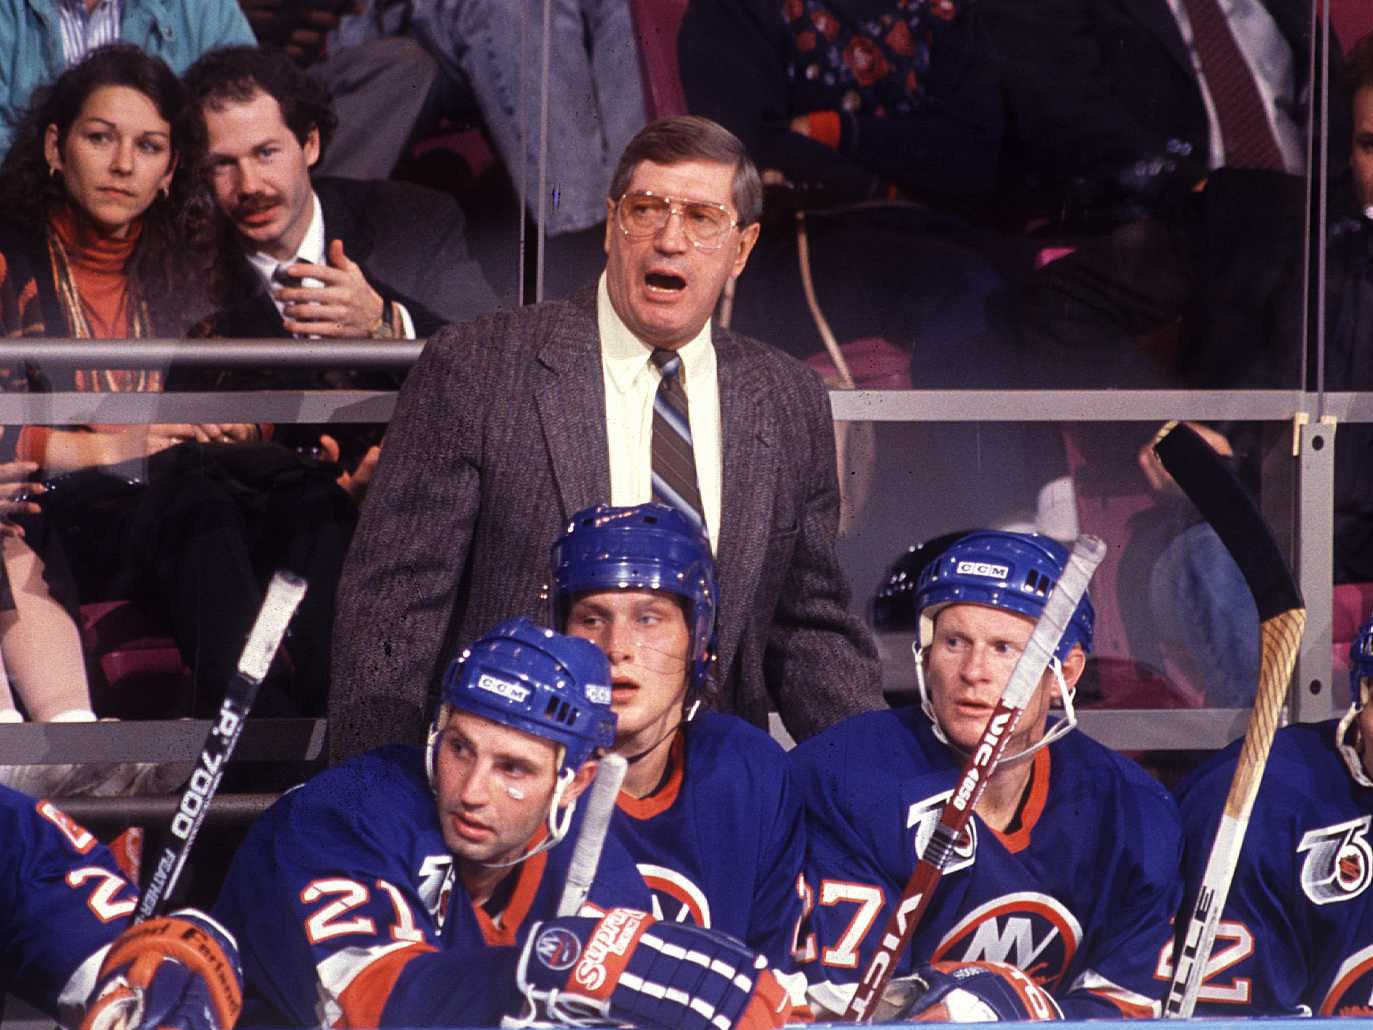 Al Arbour, Coach of Islanders' 1980s Dynasty, Dies at 82 - The New York  Times